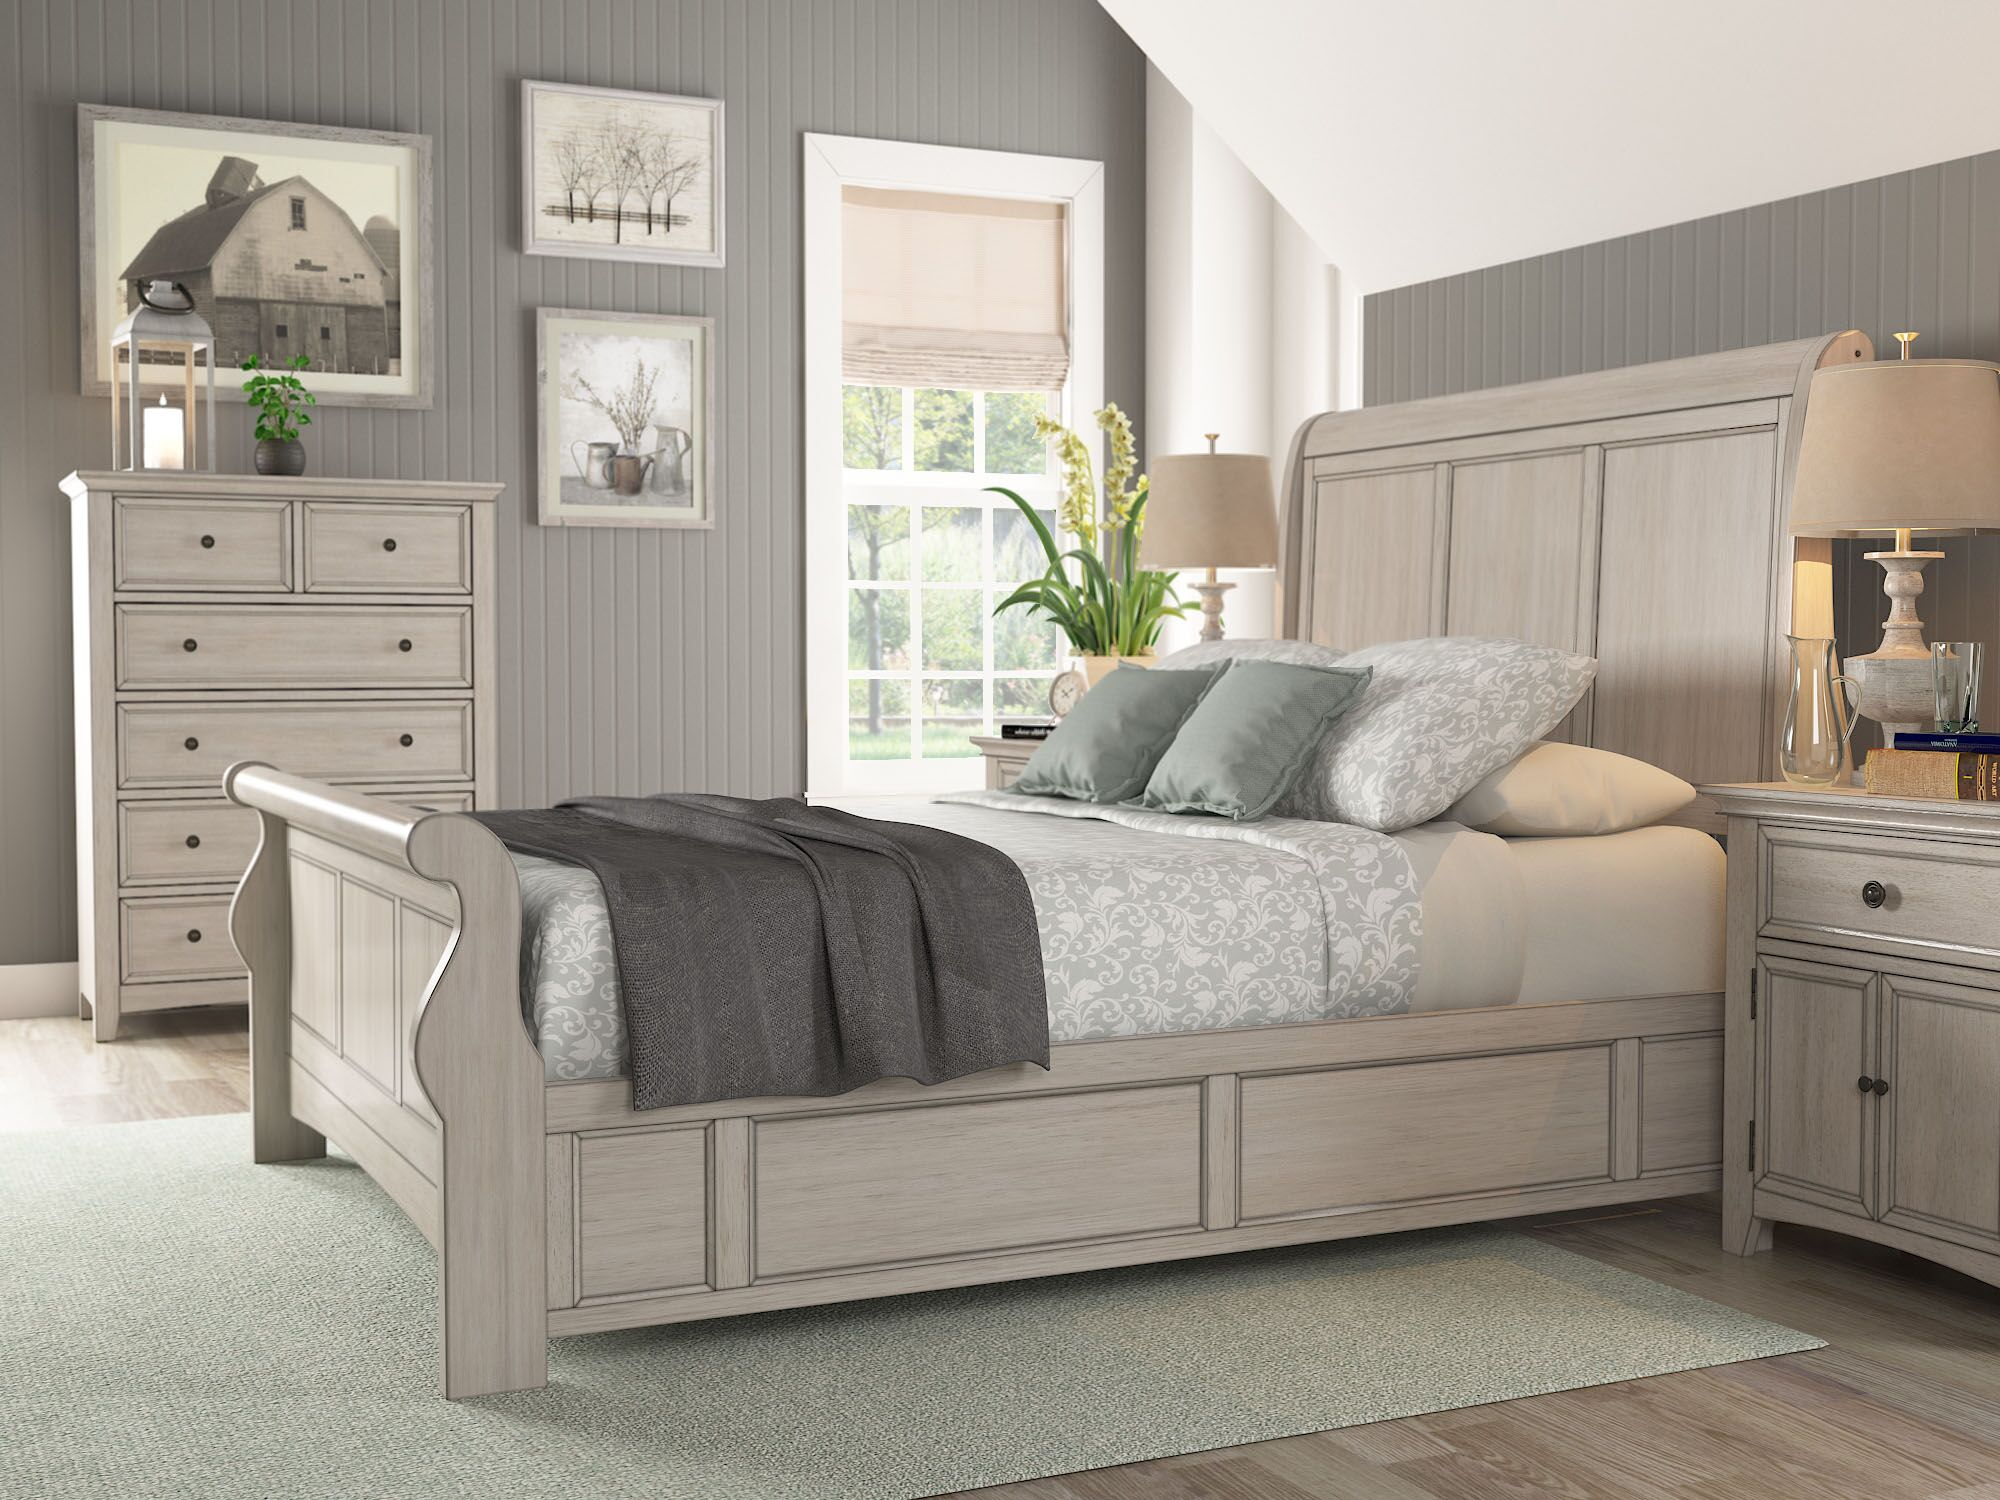 Sefton Sleigh Bed Color: Antique White, Size: King